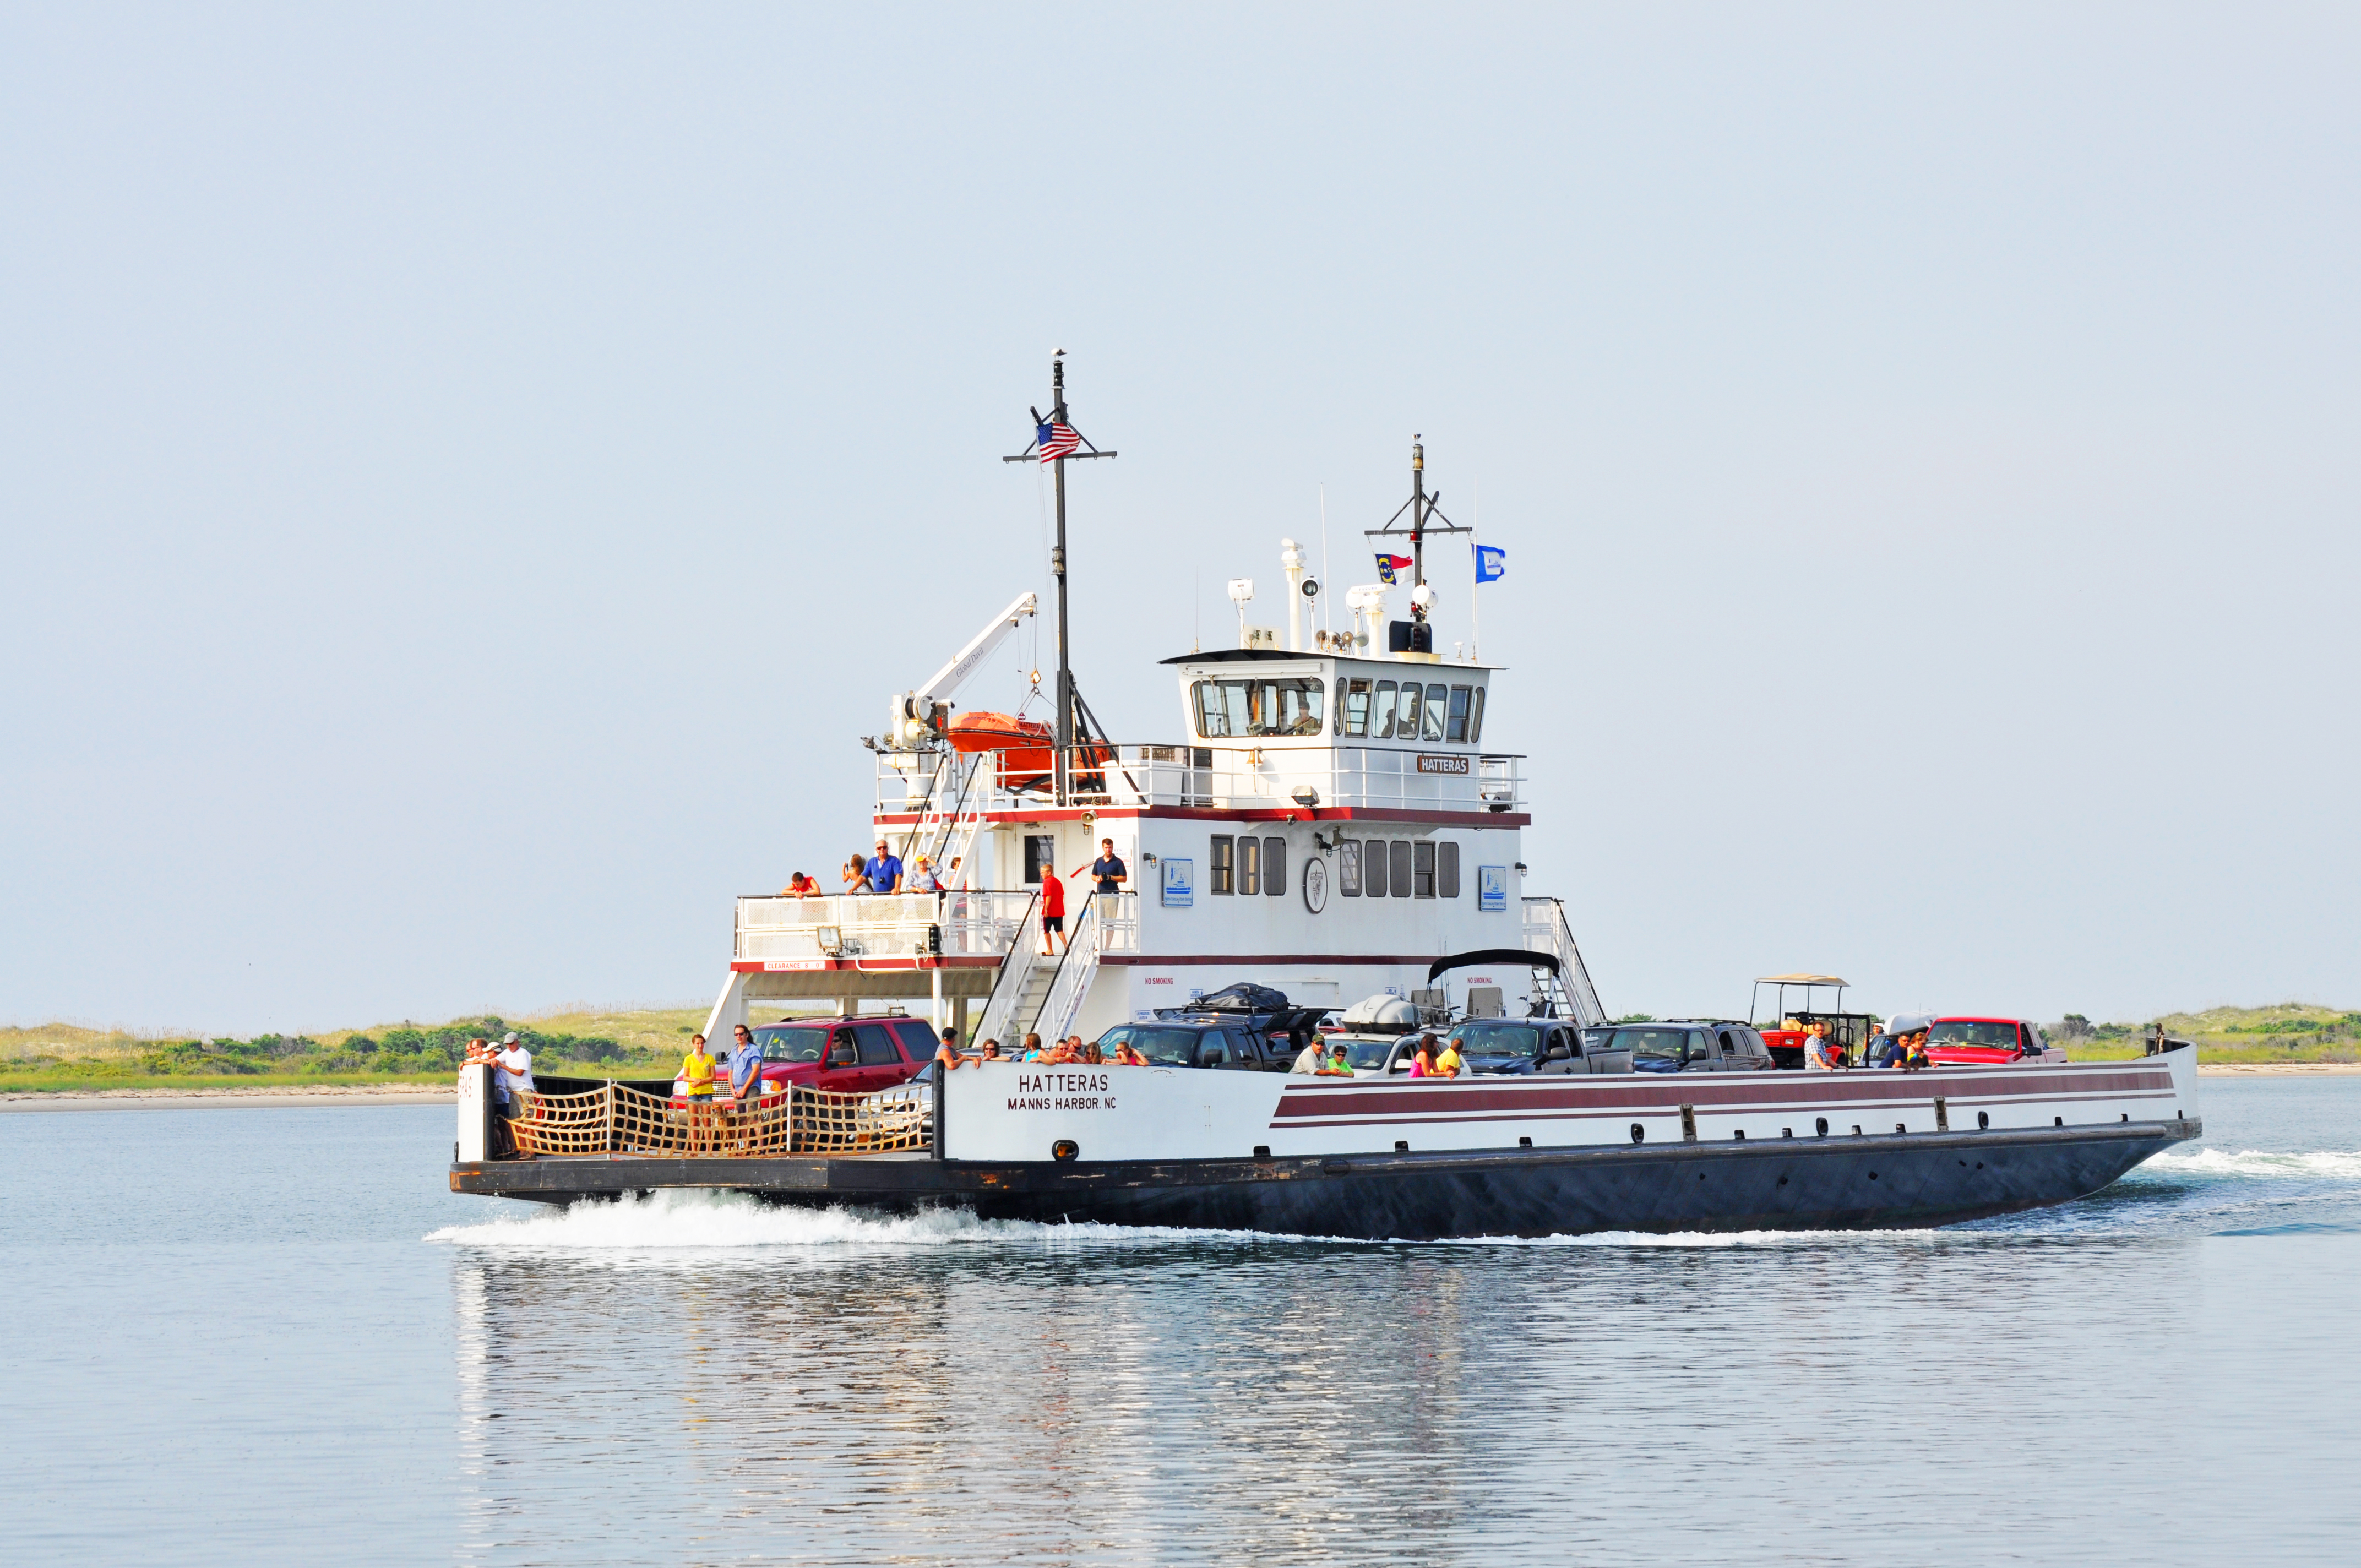 the outer banks ferry schedules | times, ticket prices